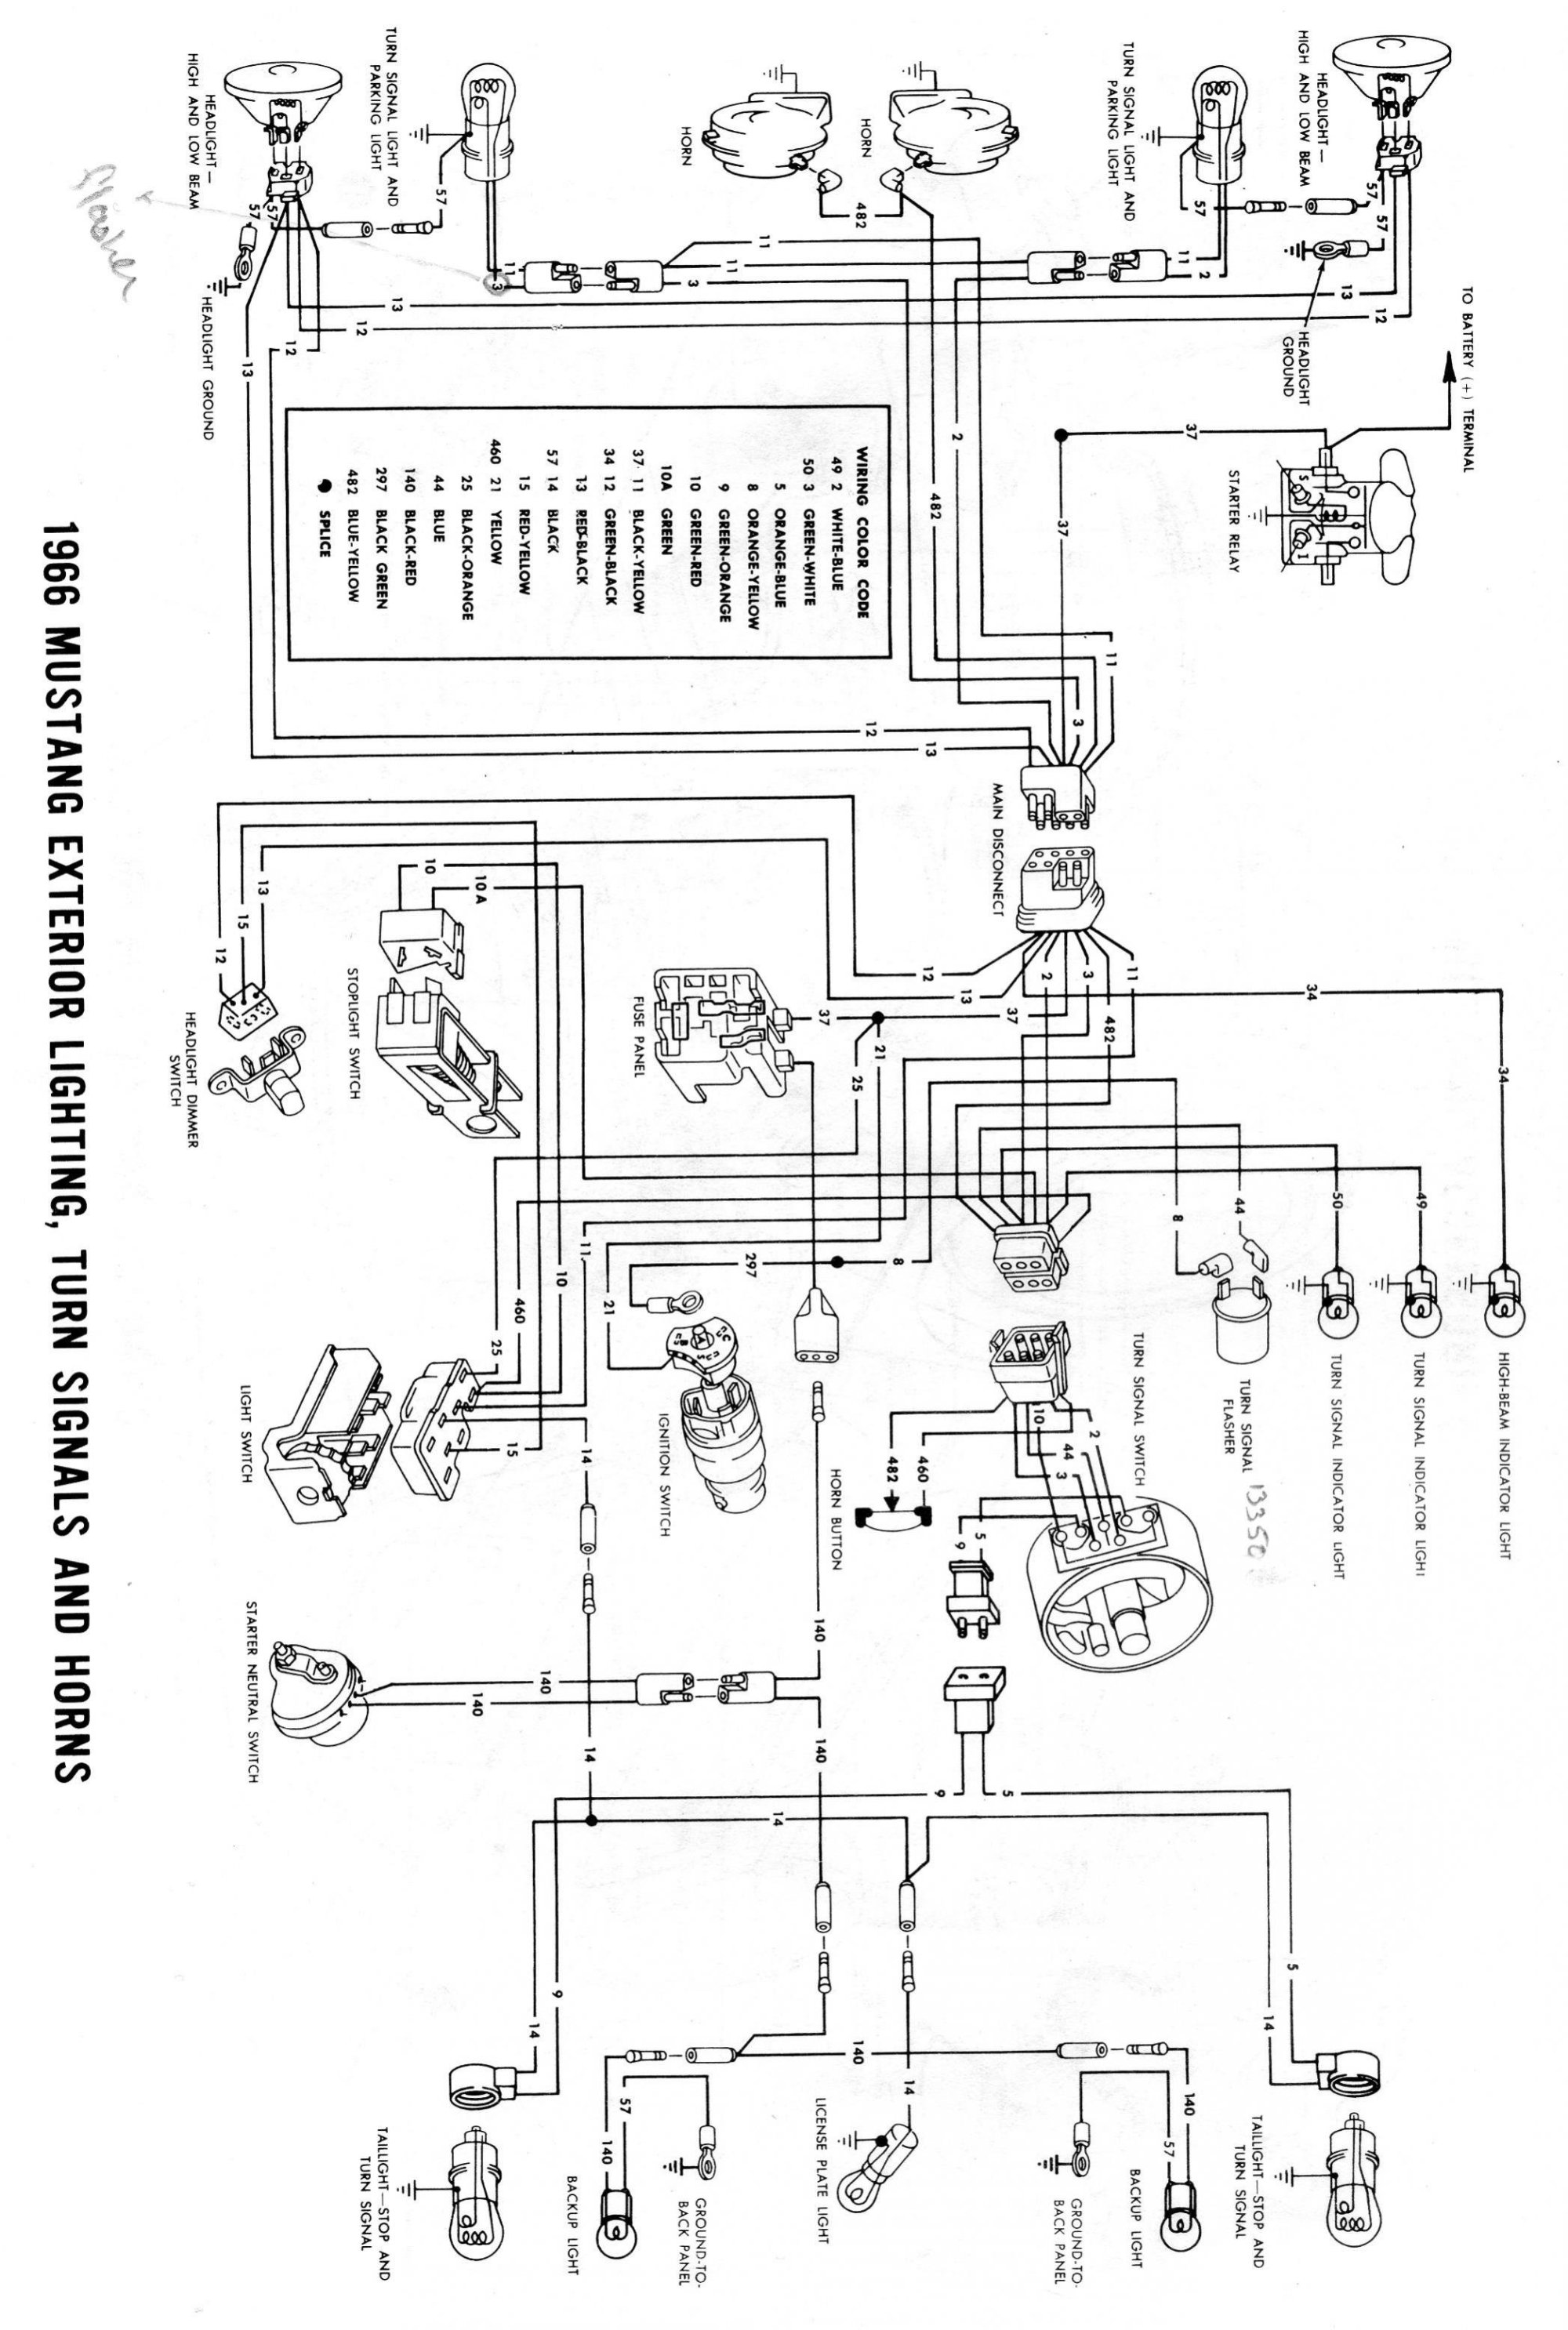 hight resolution of 73 cougar wiring diagram wiring diagrams global73 cougar wiring diagram blog wiring diagram 1973 ford mustang